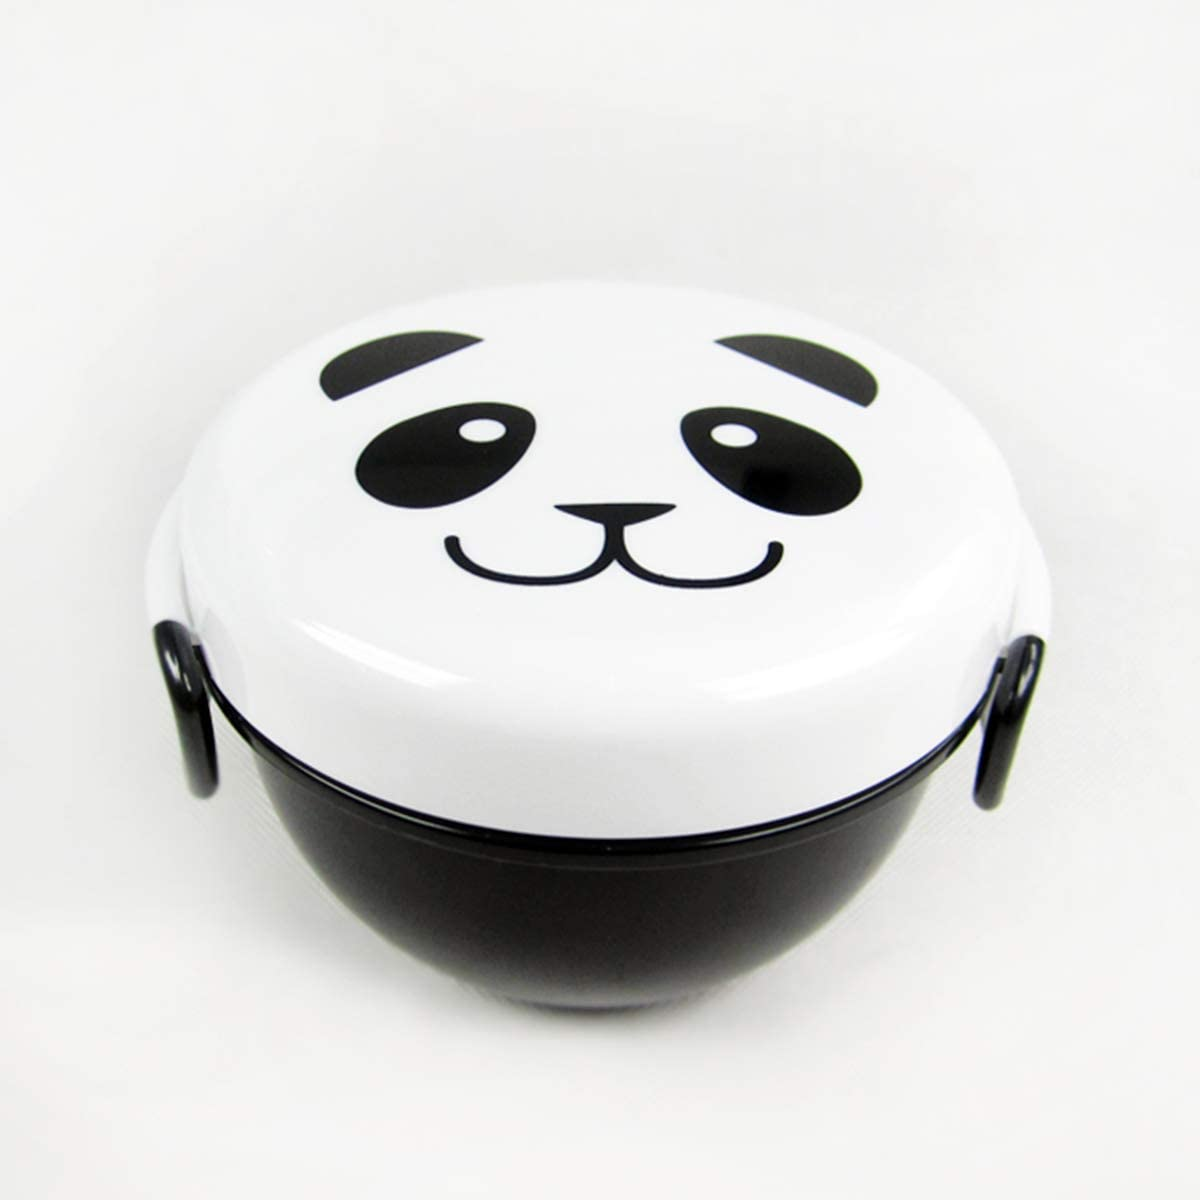 Cute Panda Face Bento Box for Kids Boys Lunch Box Children School Lunch Container for Toddler Girls Animal Zoo 2 Layer Food Container Bowl Snack Box Lunchbox with Fork Spoon Microwave Safe,white black